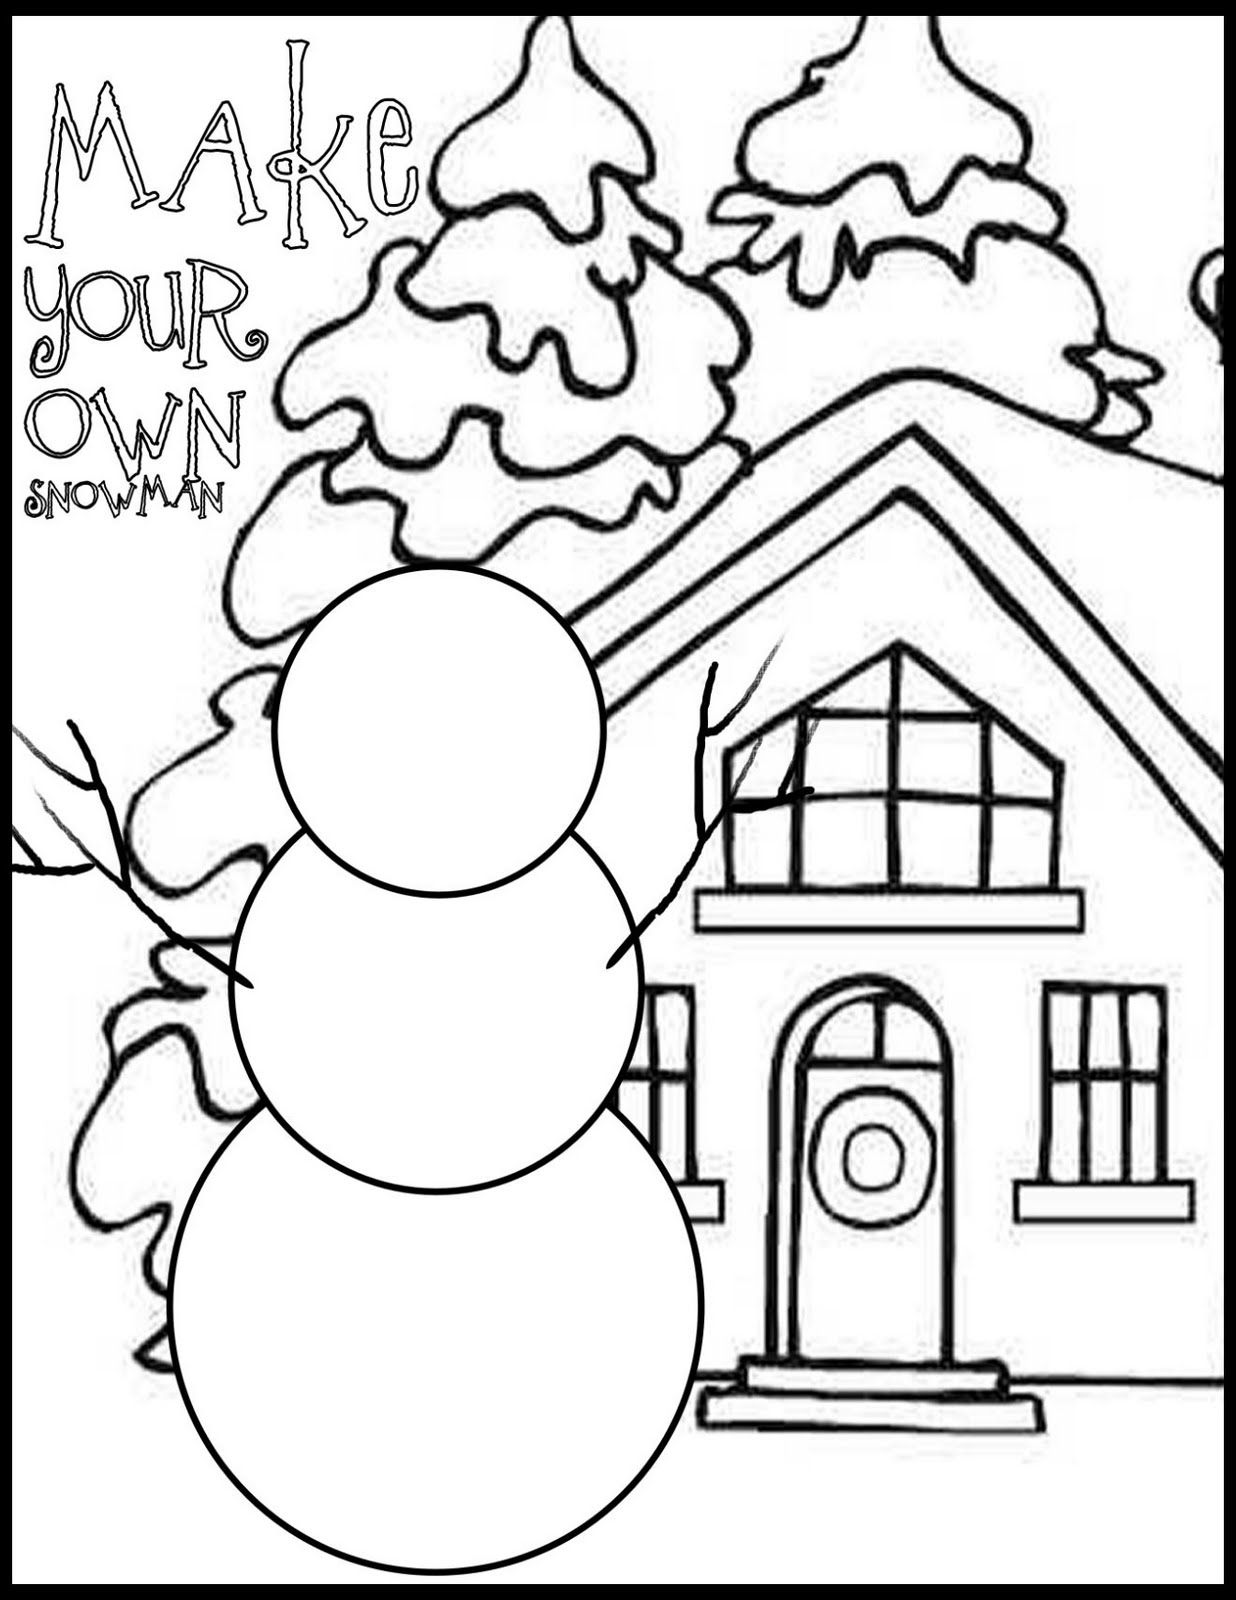 everyday mom ideas draw your own snowman coloring page preschool winter preschool christmas